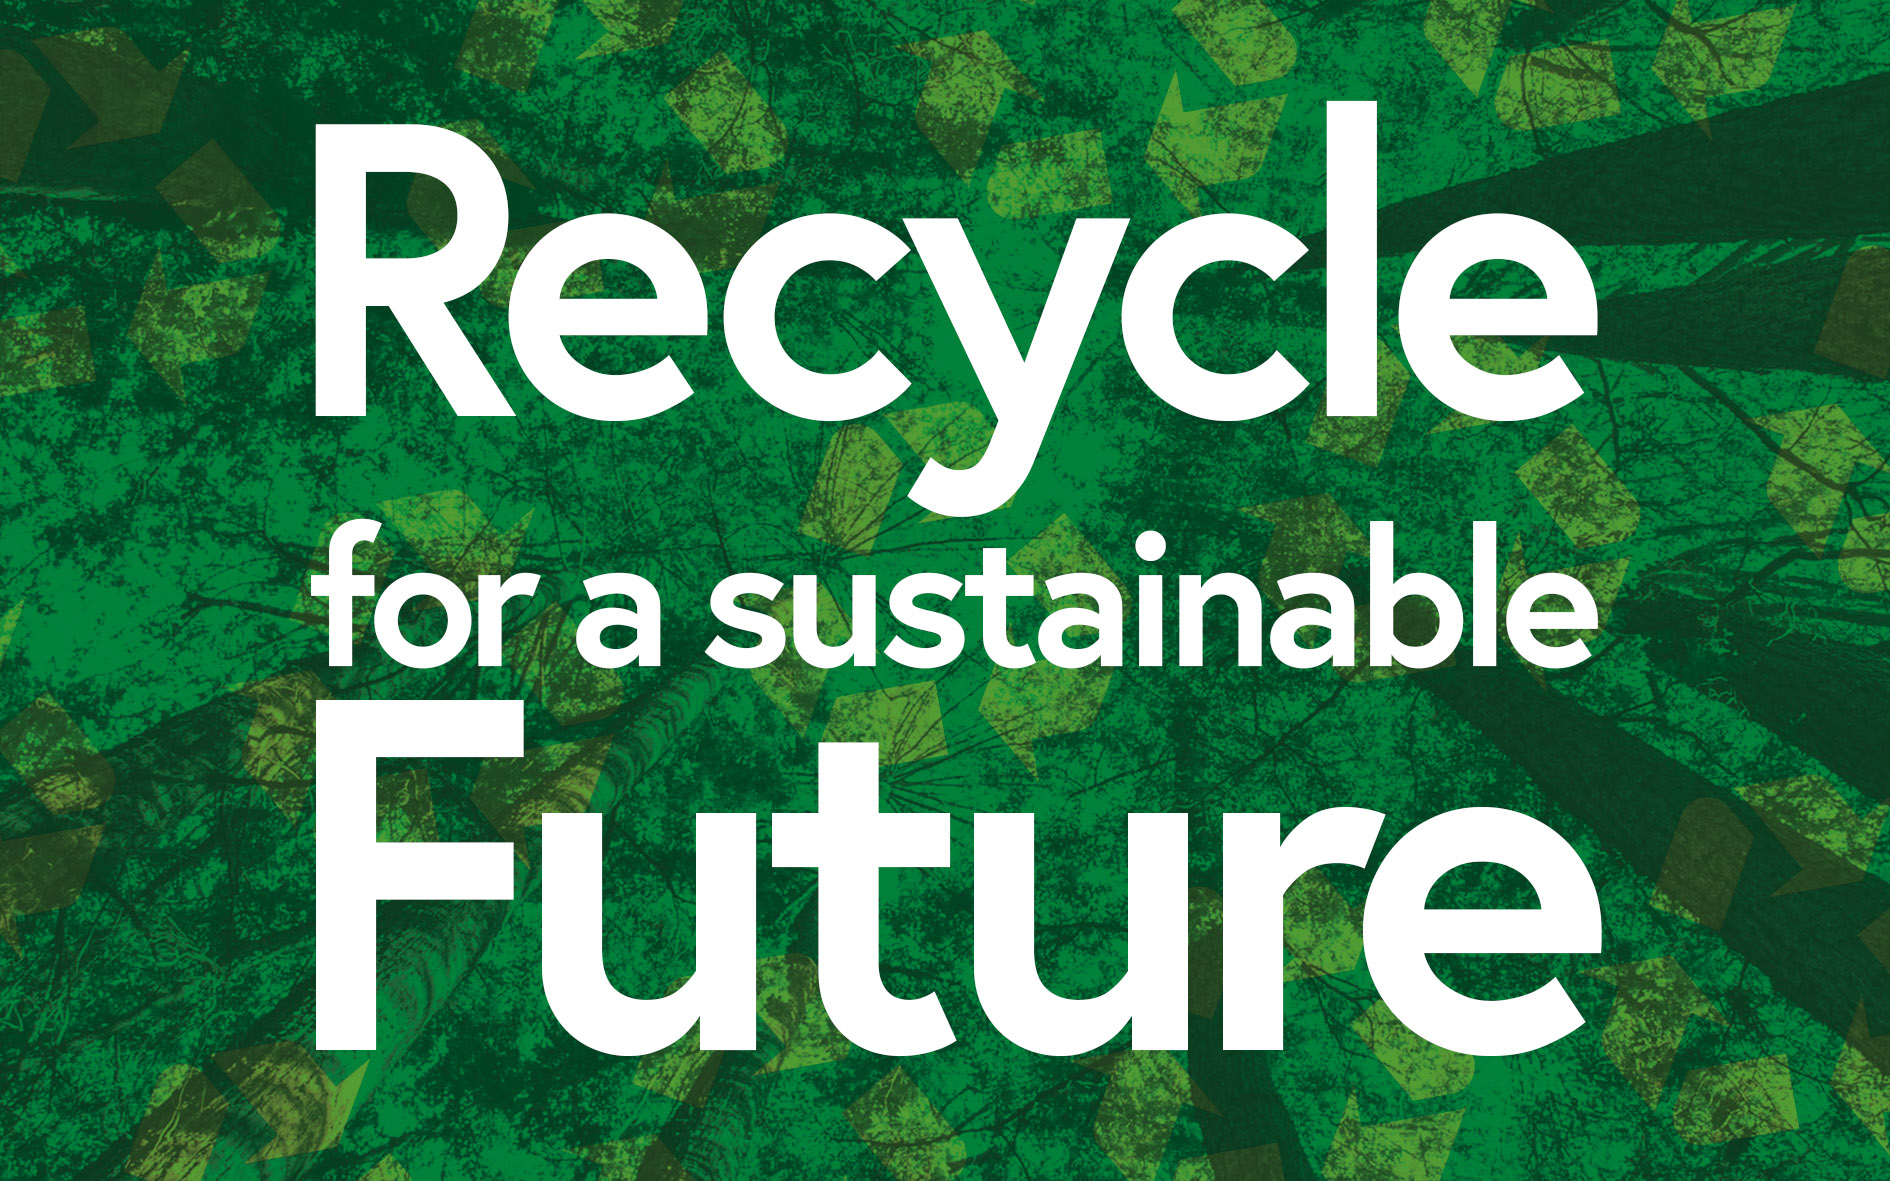 Recycle for a sustainable future